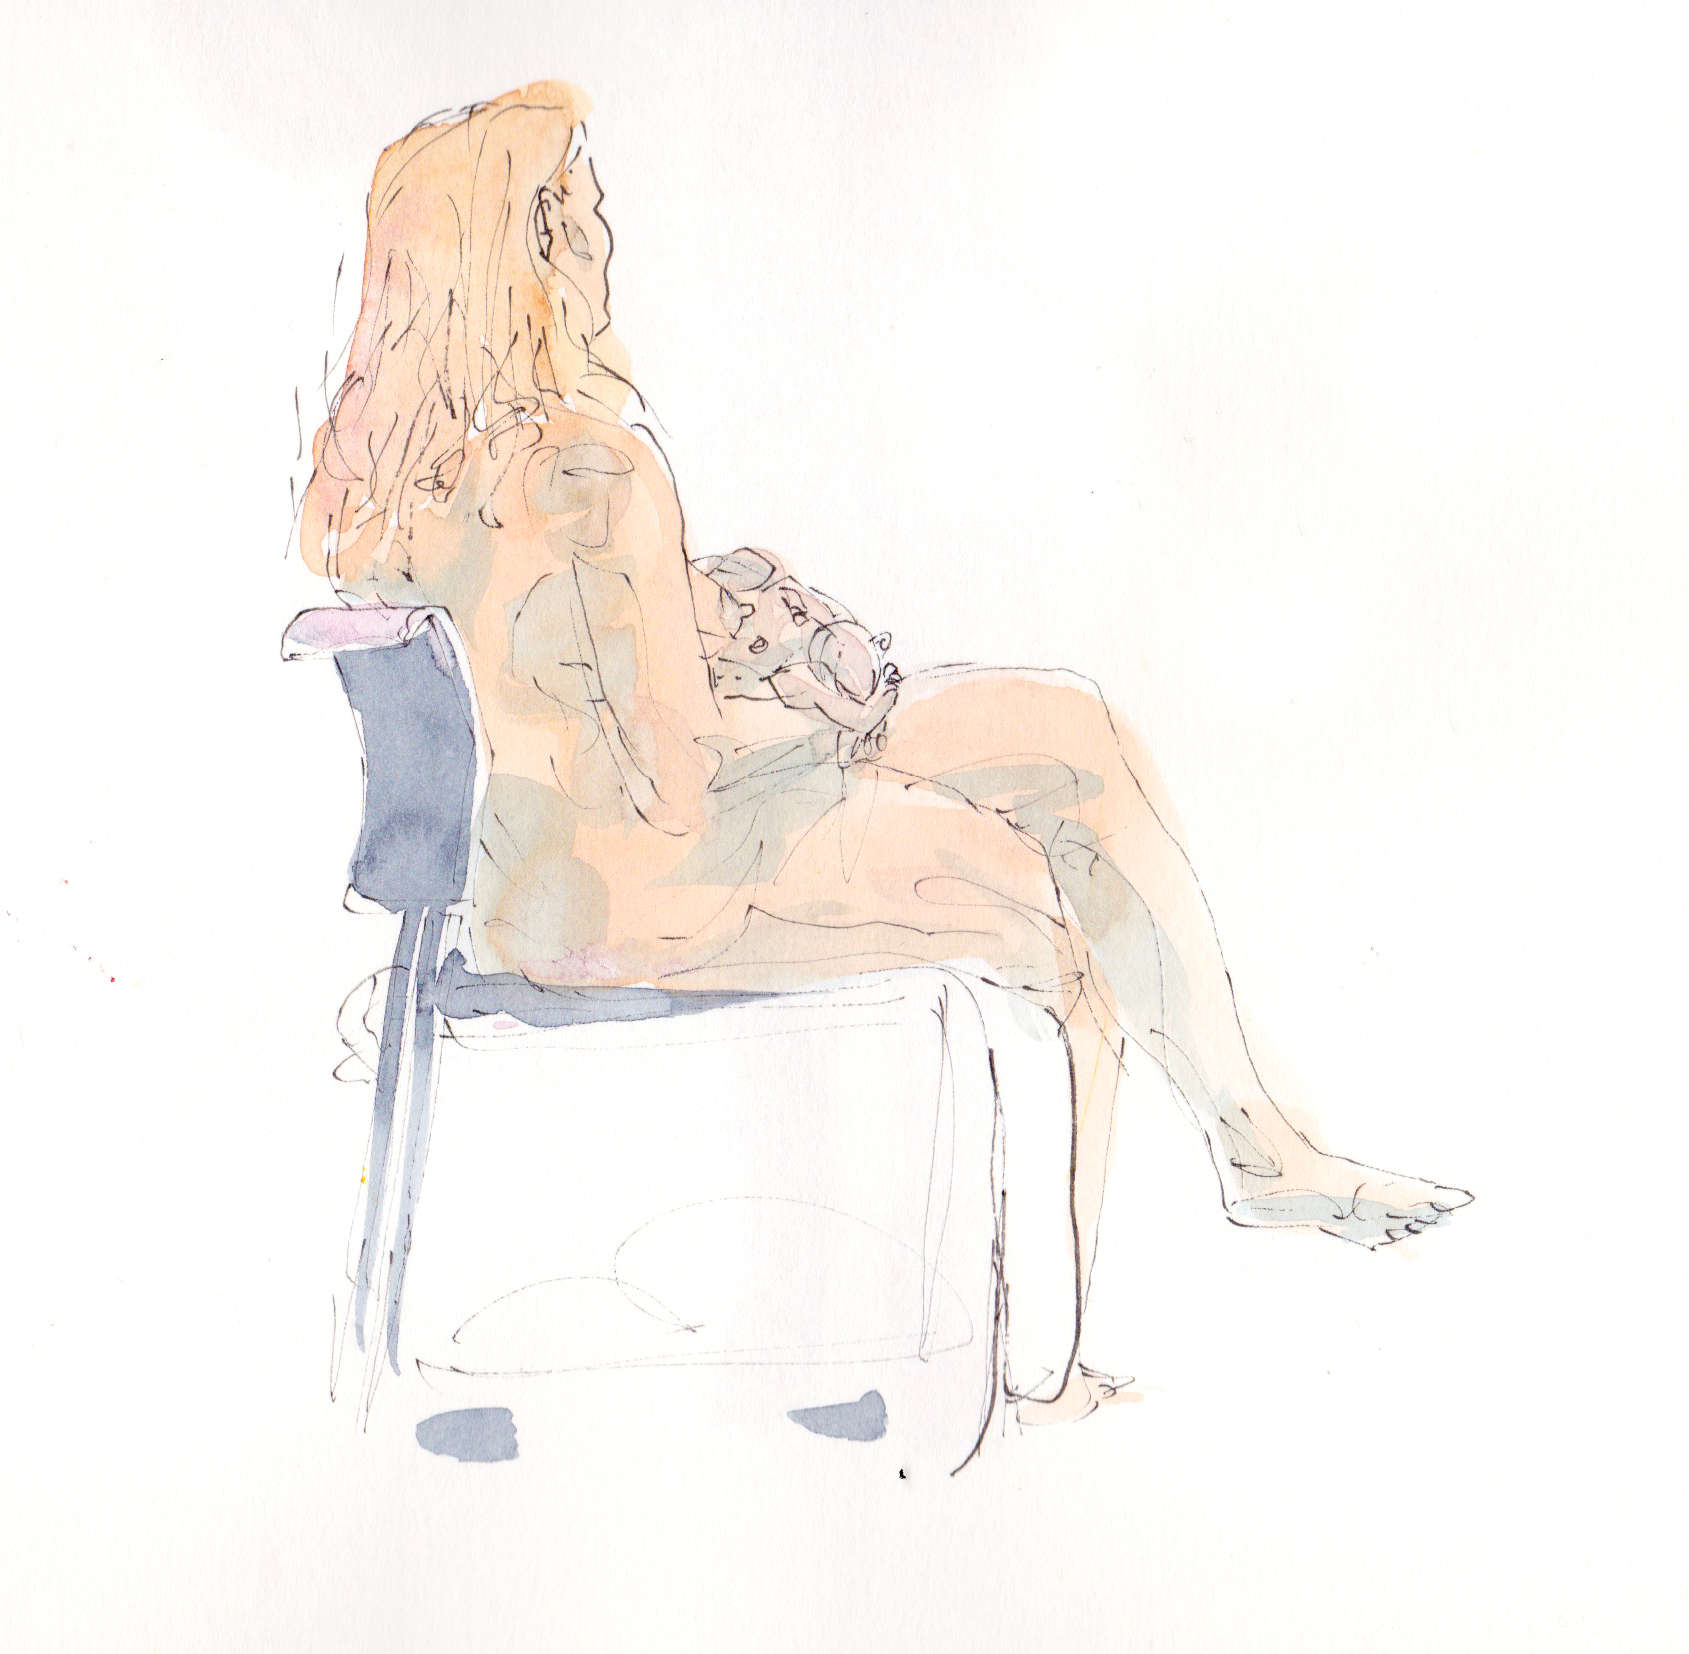 lifedrawing 07